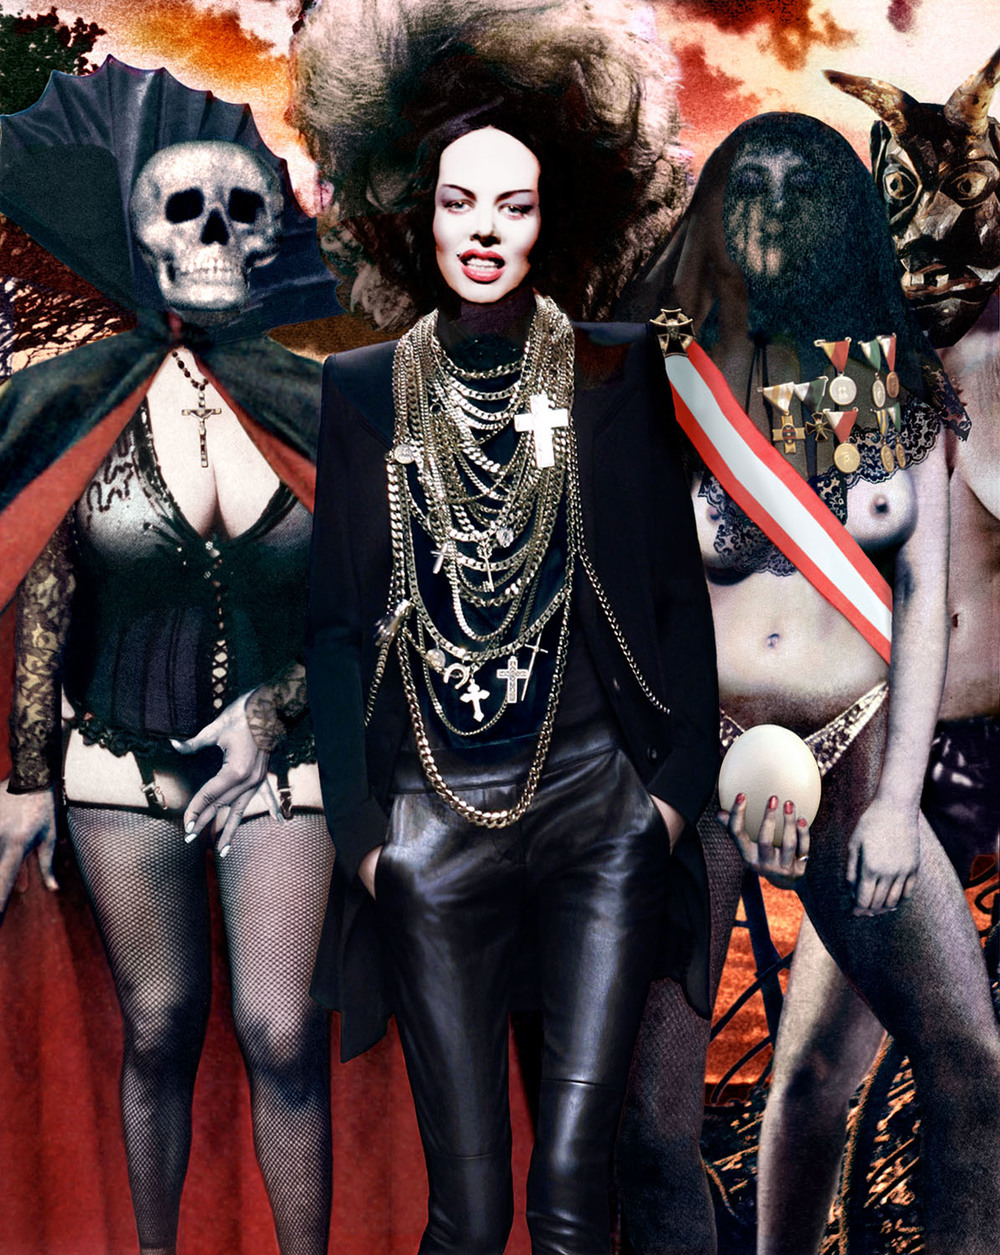 Kembra Pfahler by Guy Peellaert, from the  Fashion Dreams, part 2  series (2008)